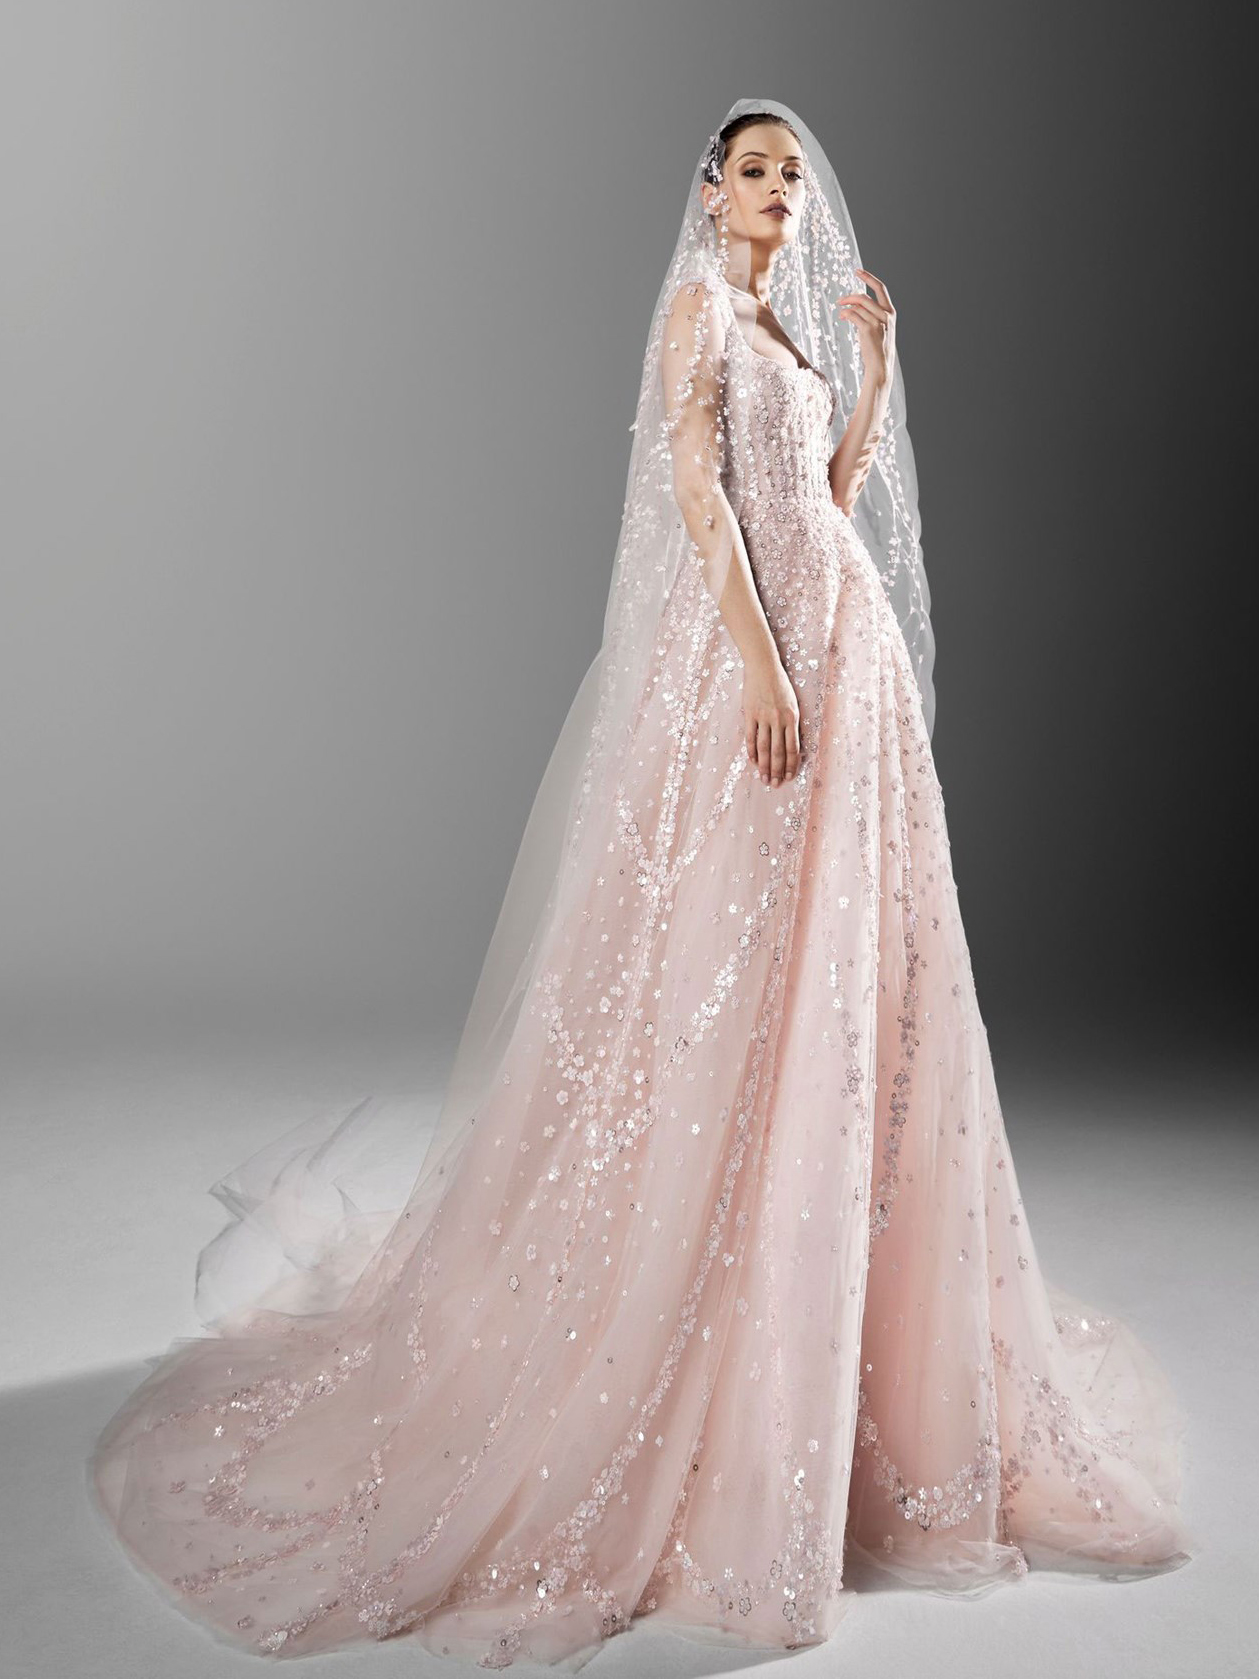 Bridal 9 Inspirated By Zuhair Murad Bridal Spring 2021